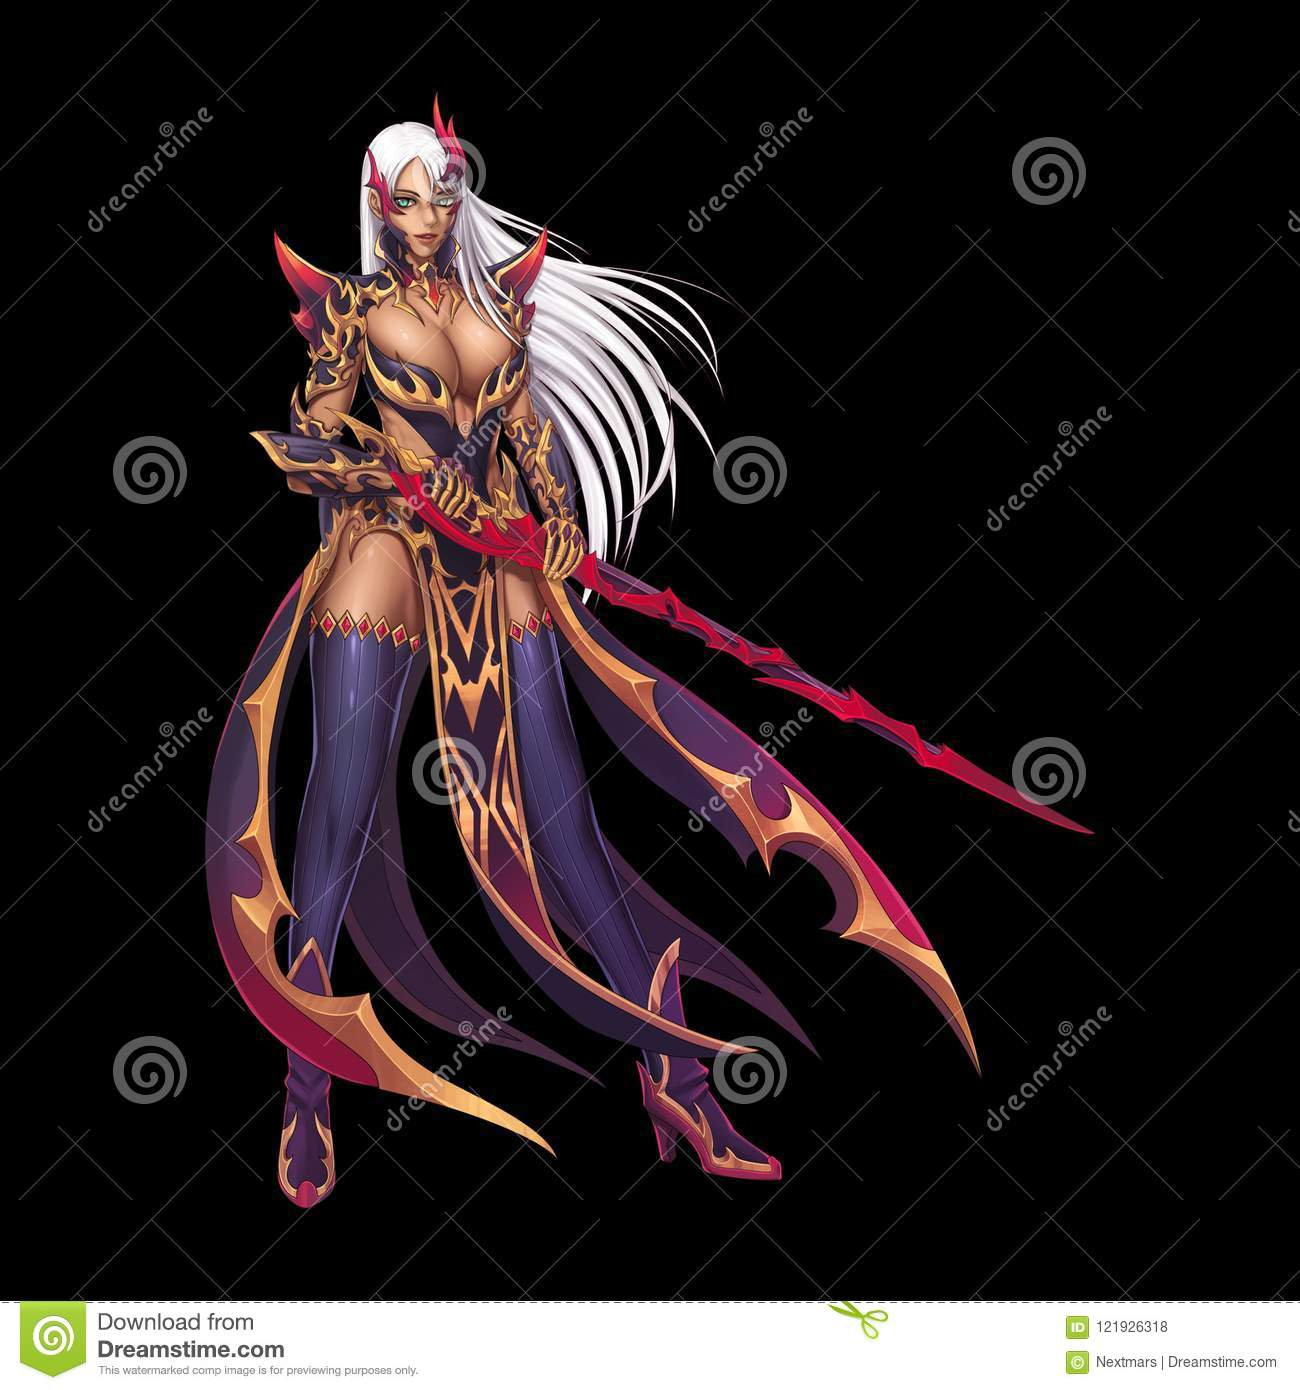 Dragon Fighter Knight Girl With Anime And Cartoon Style Isolated On Black Background